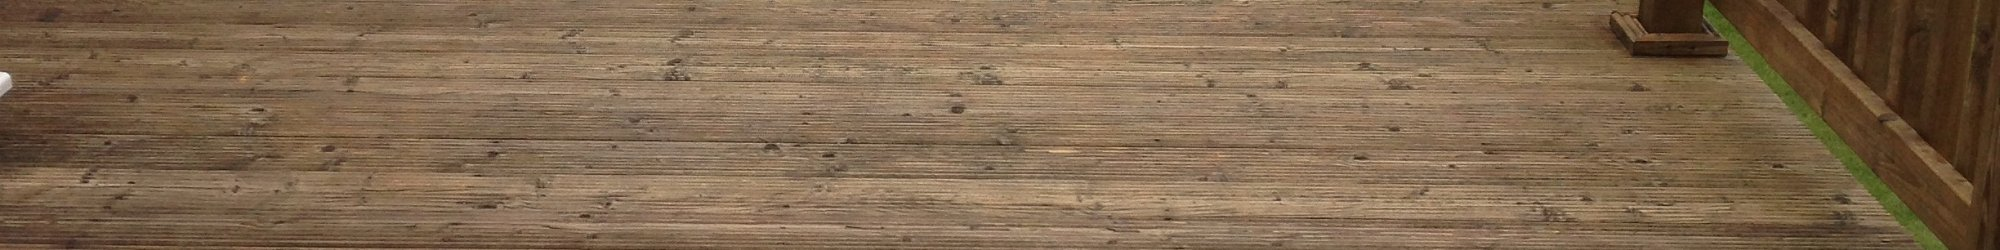 Decking Cleaning and Oiling